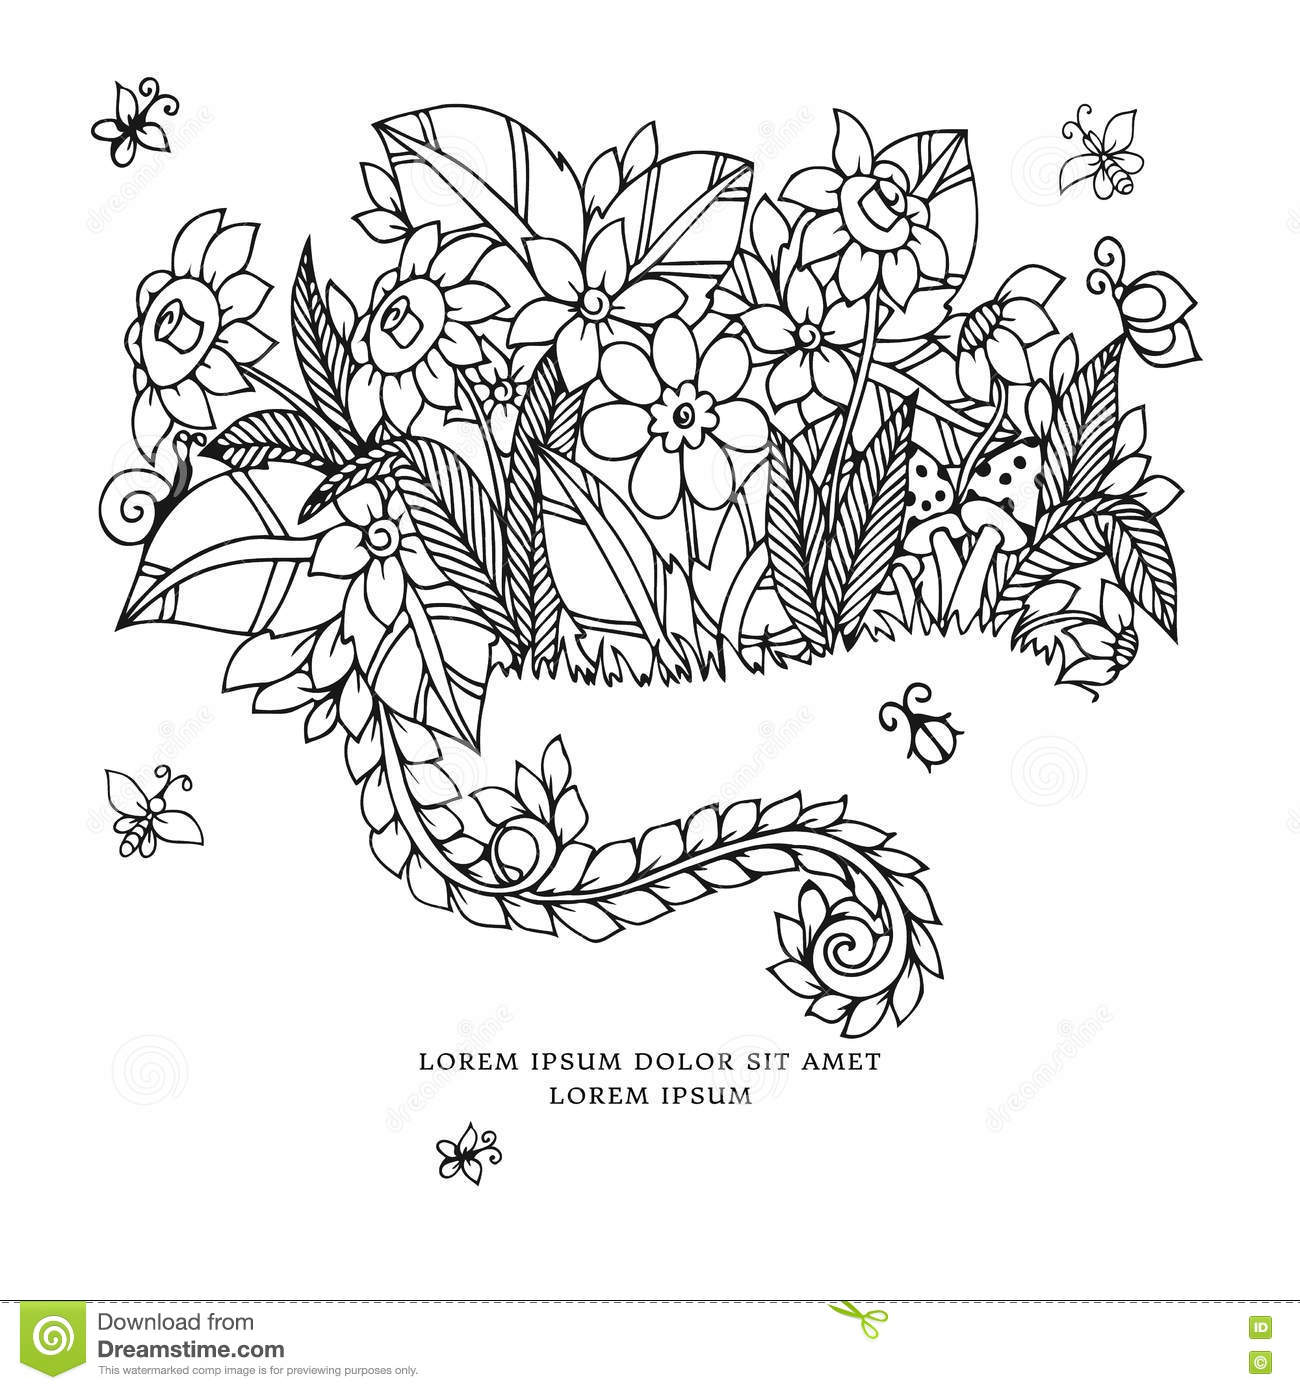 Coloring book wedding pictures - Vector Illustration Zentangl Card With Flowers Doodle Flowers Spring Jewelry Wedding Coloring Book Anti Stress For